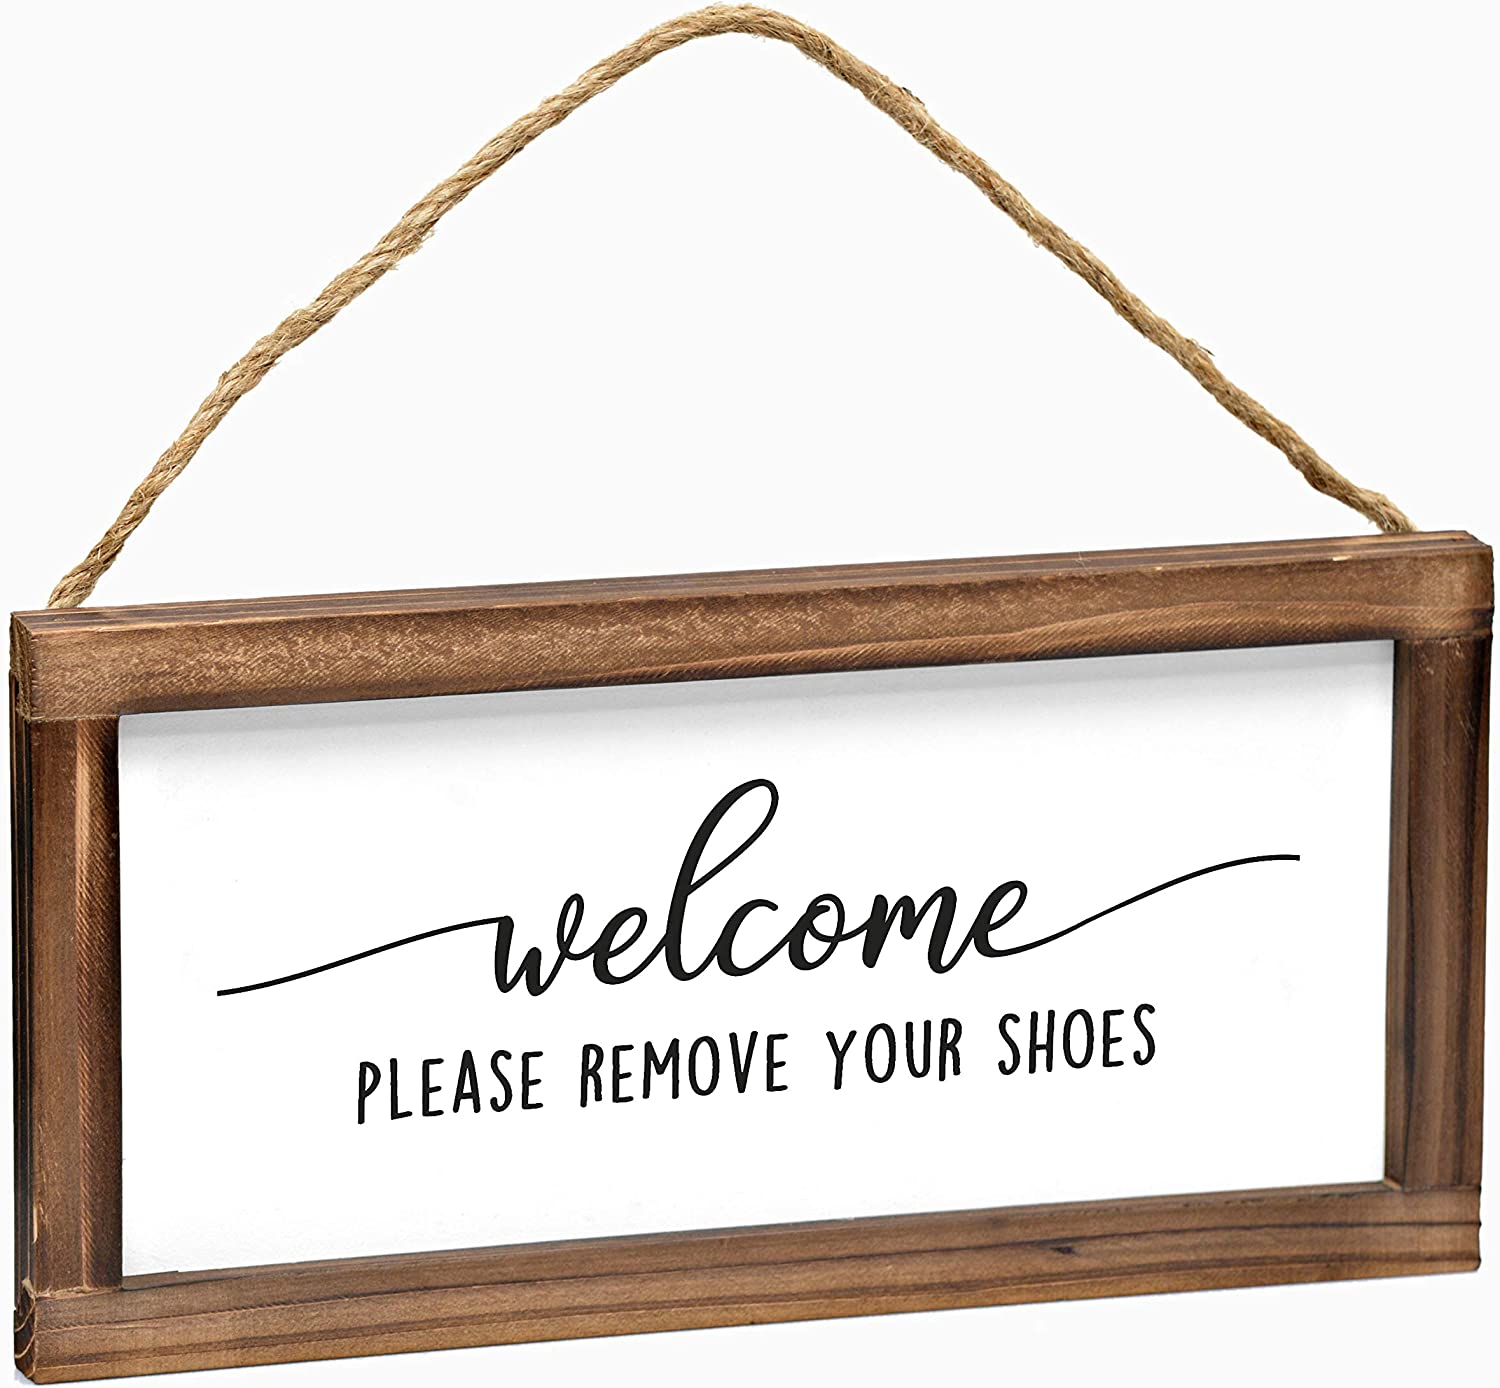 Please Remove Your Shoes Hanging Sign - Rustic Farmhouse Decor For The Home Sign - Wall Decorations For Living Room, Modern Farmhouse Wall Decor, Wall Hanging Sign With Solid Wood Frame - 6x12 Inch